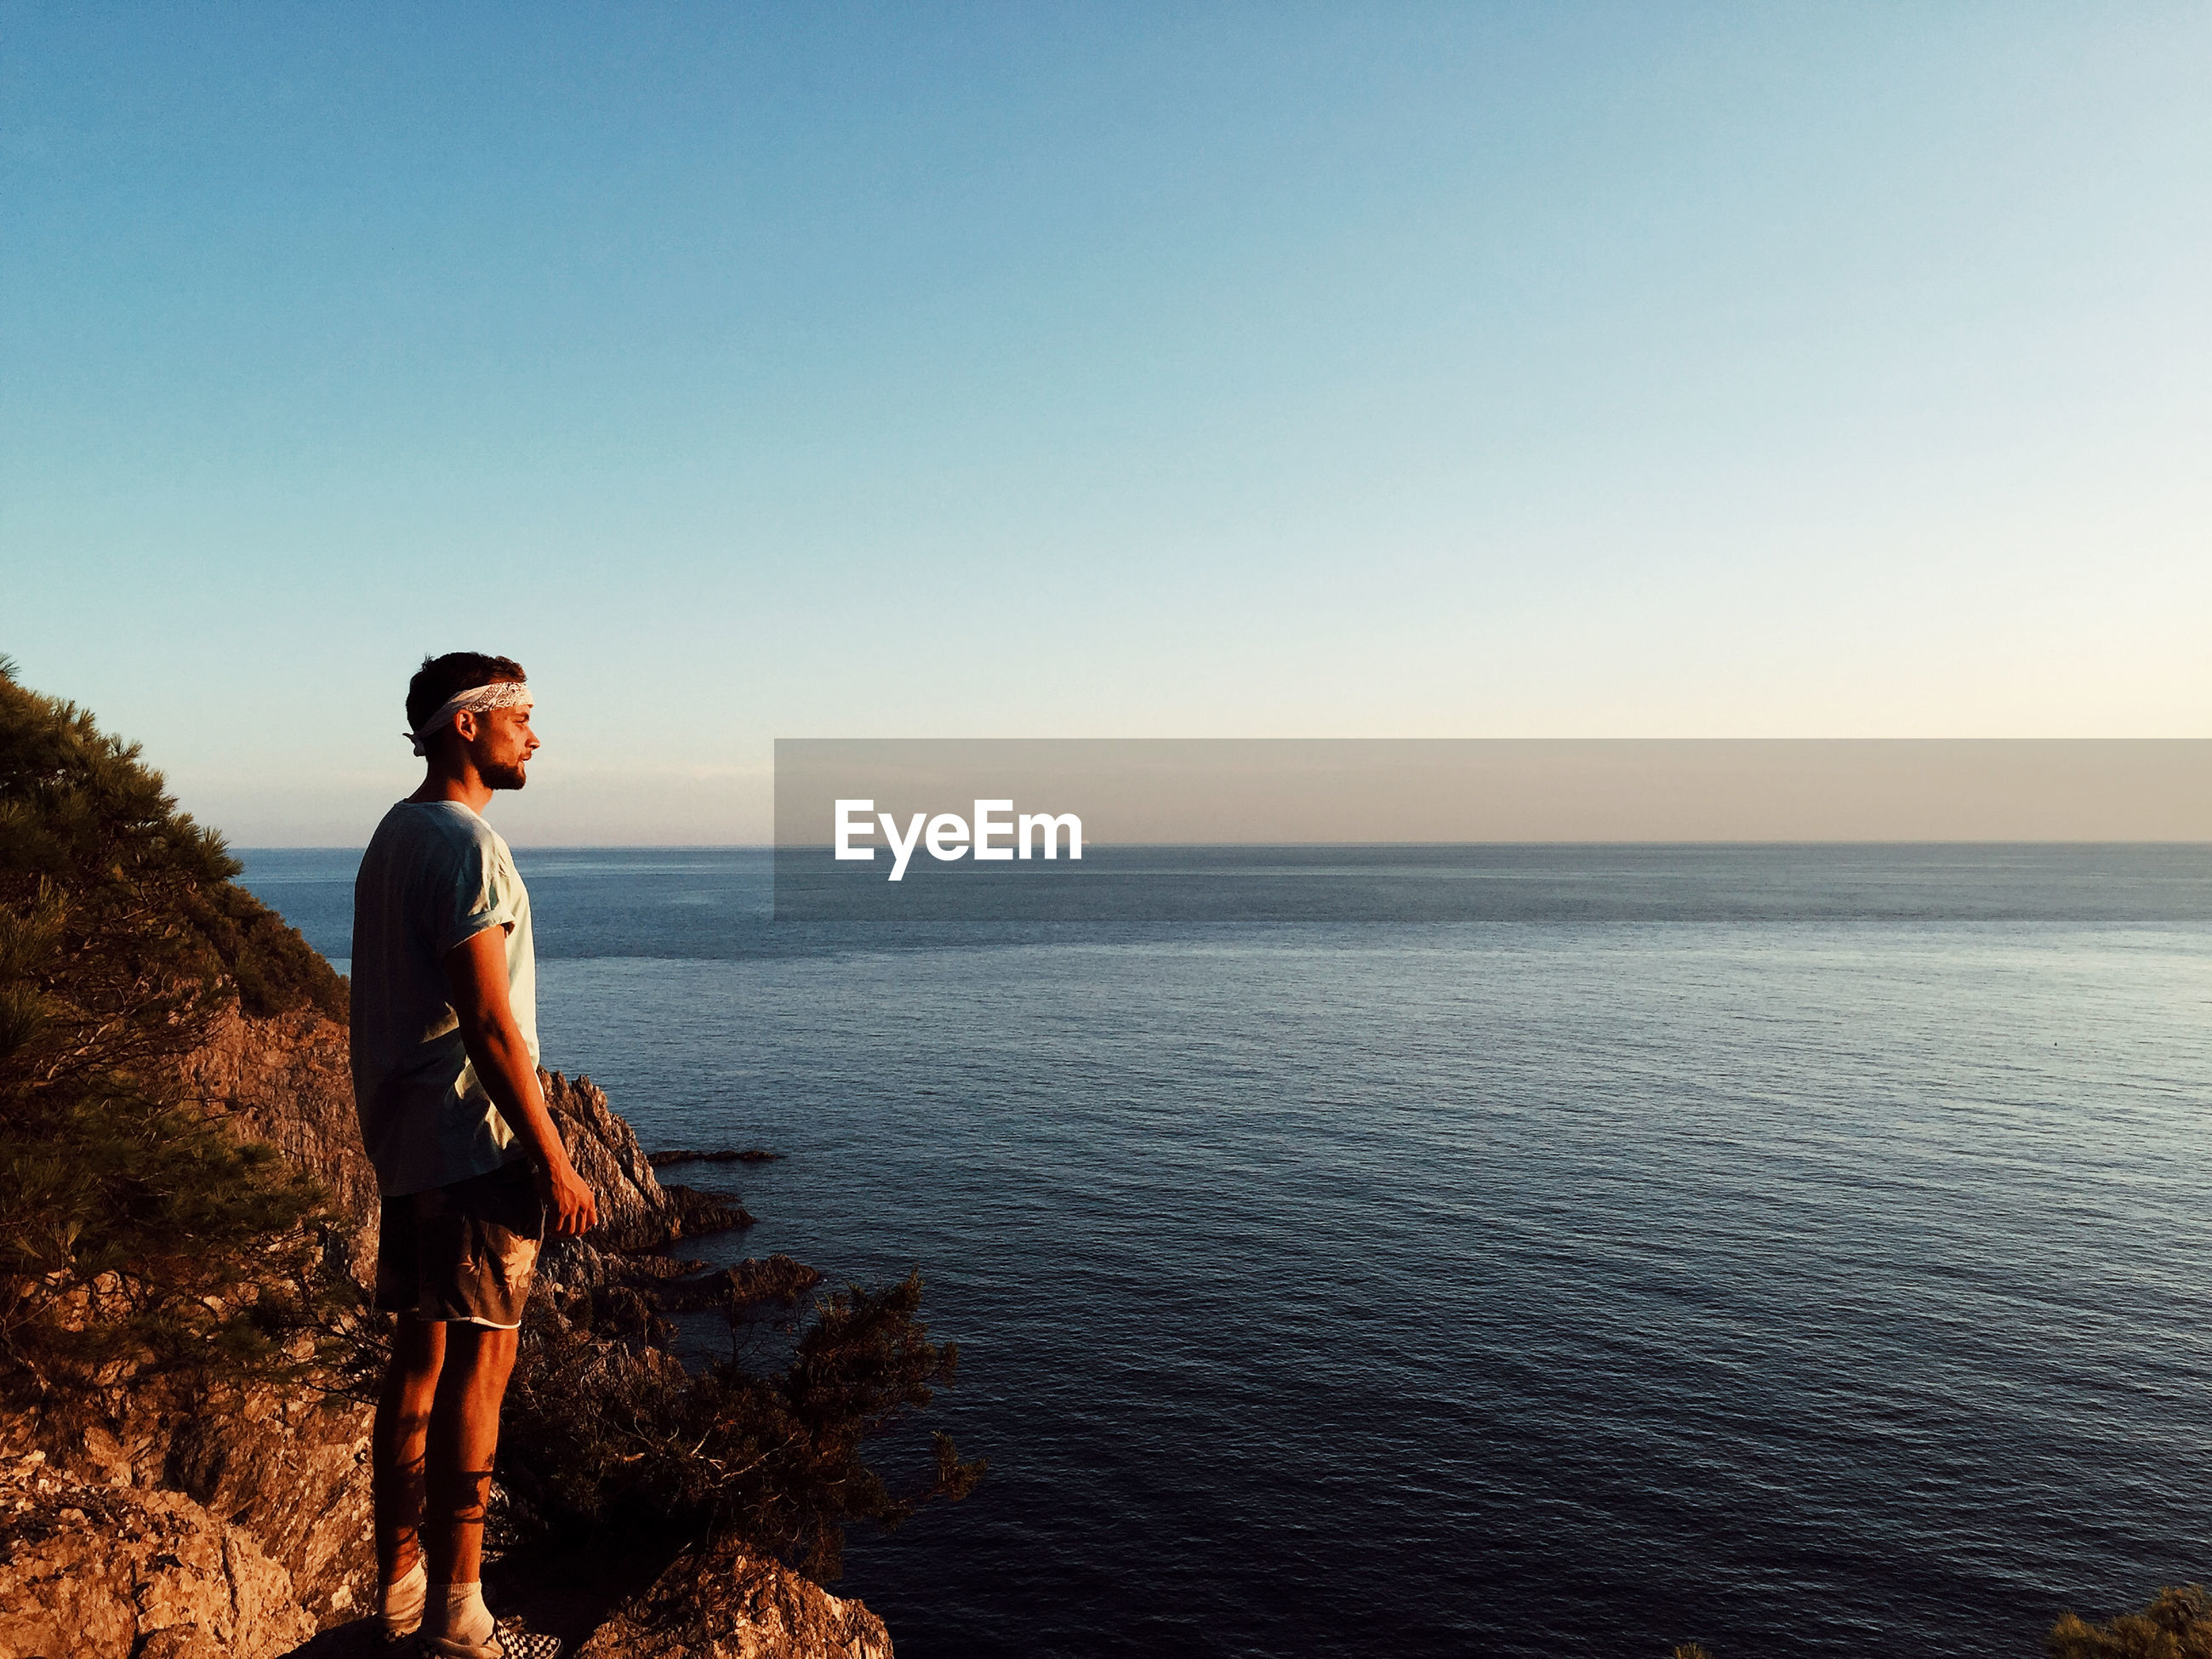 MAN STANDING ON SEA AGAINST CLEAR SKY